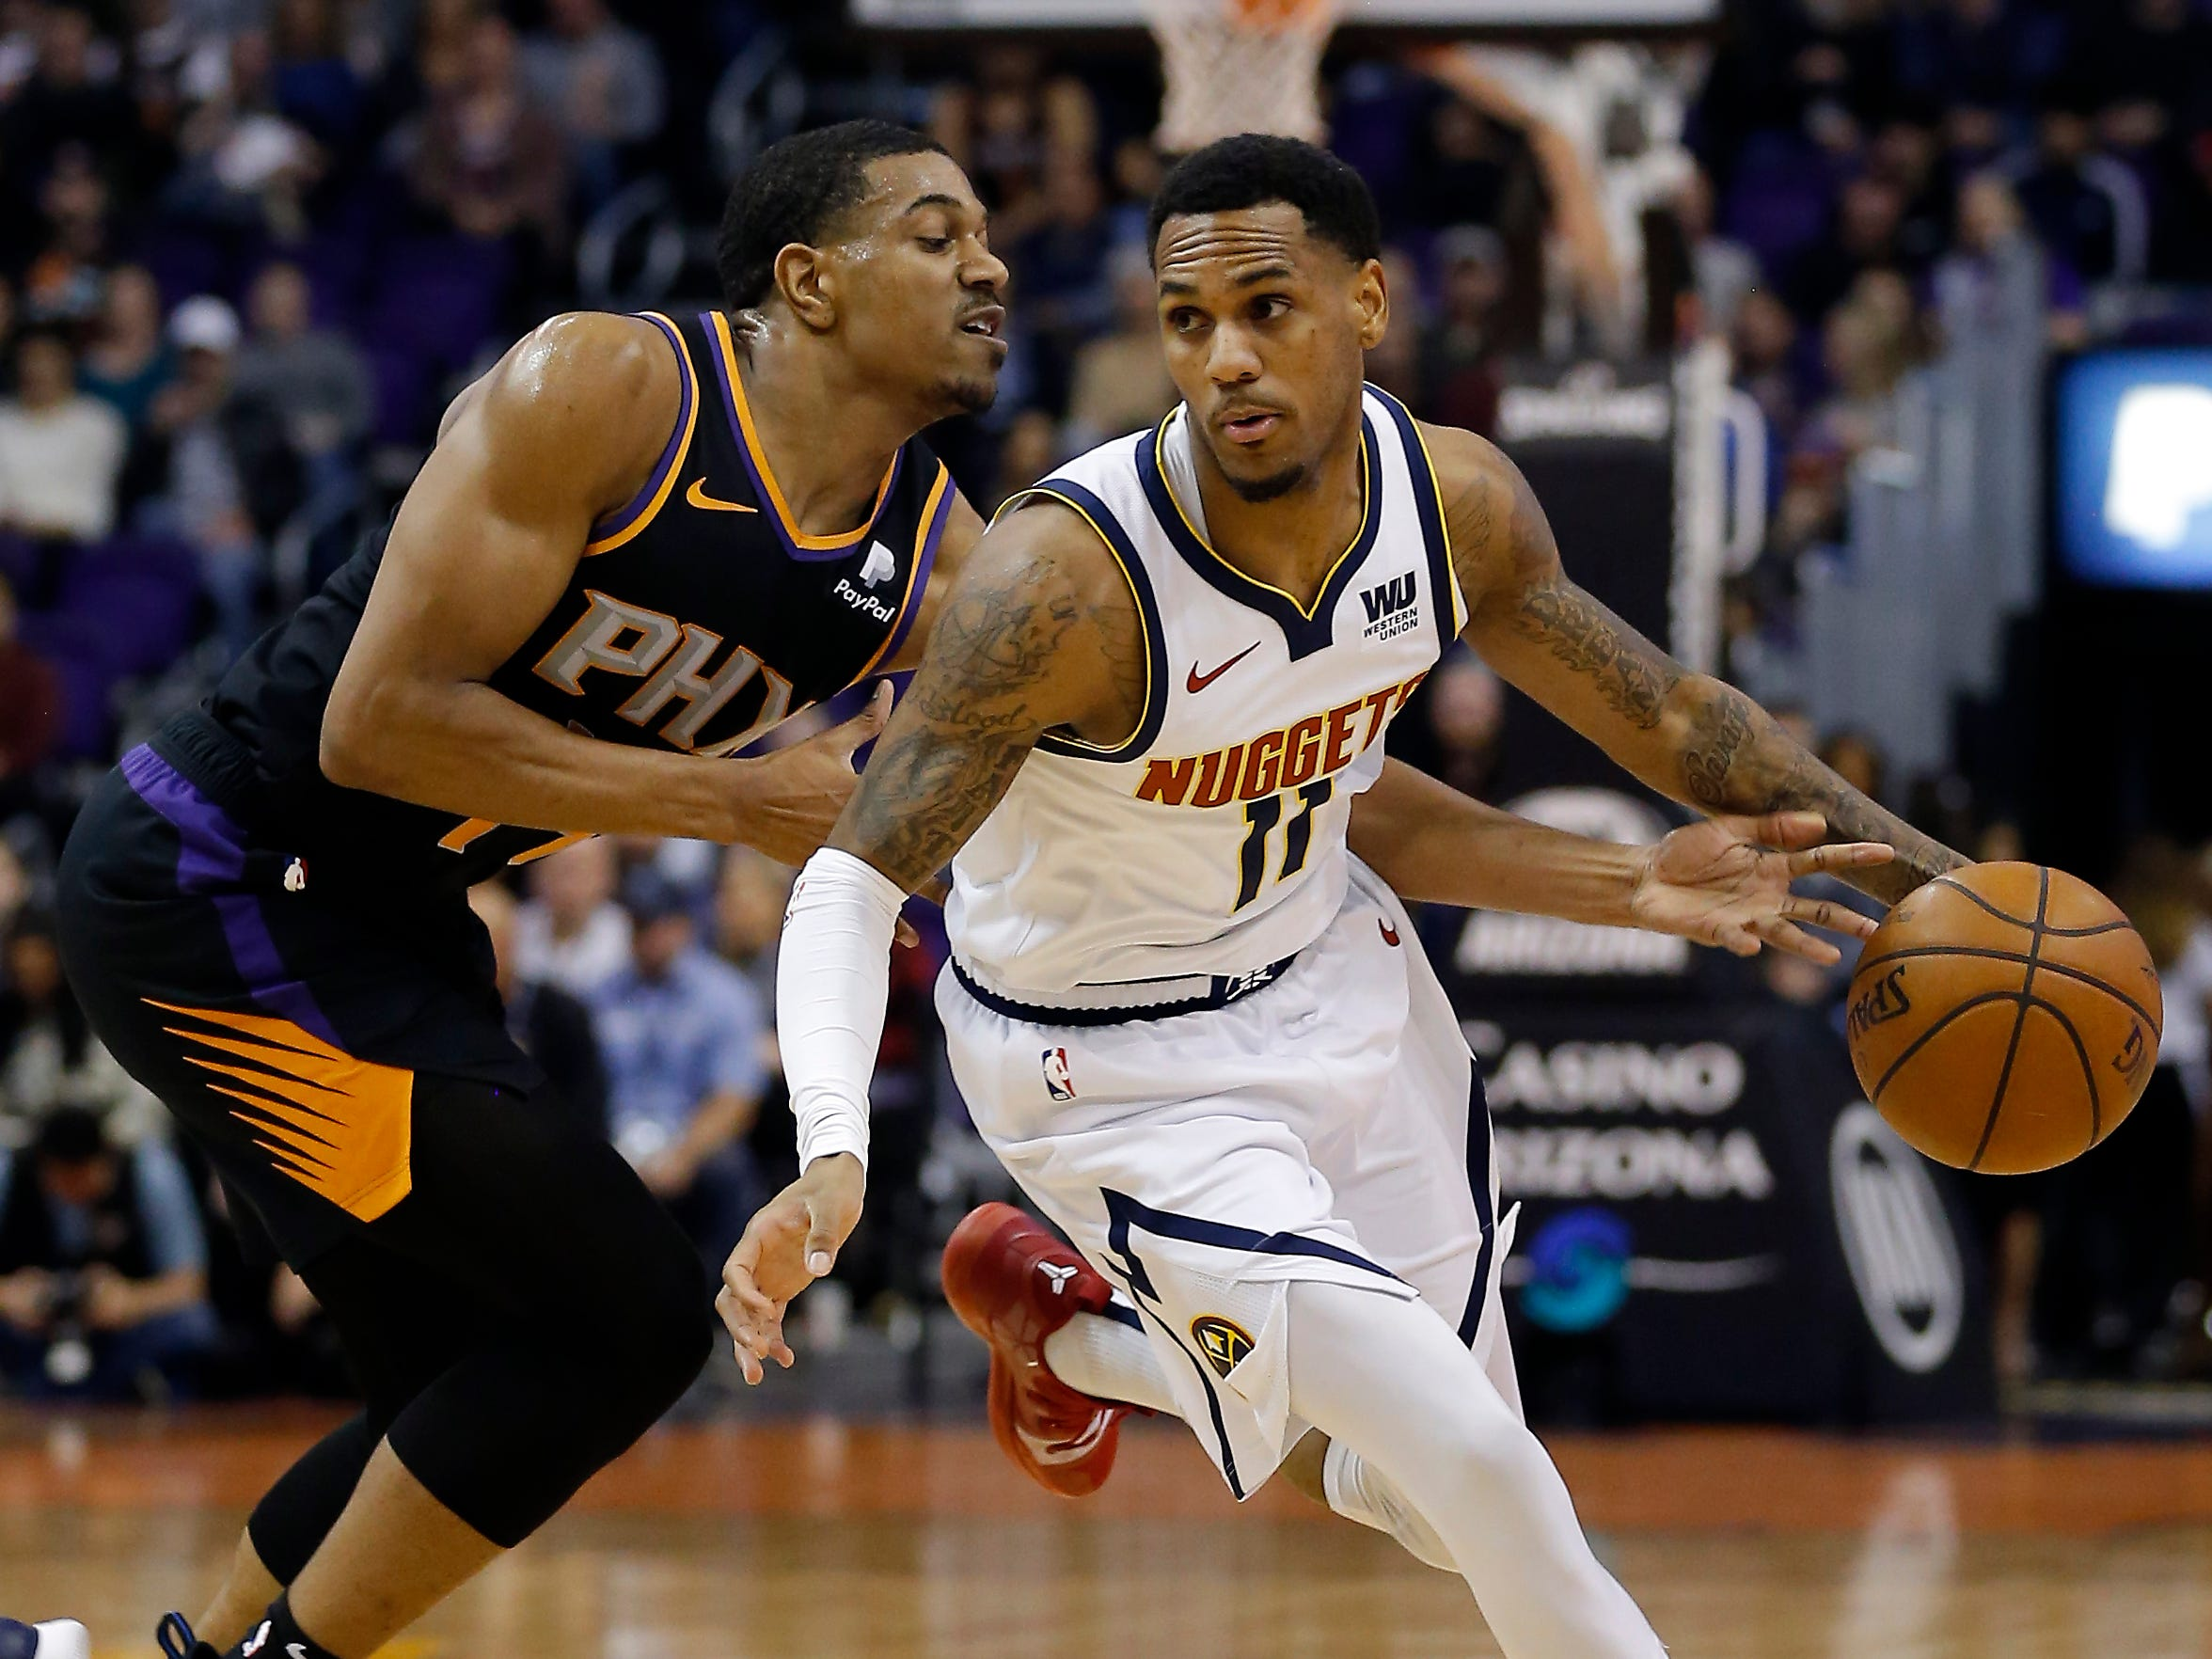 Denver Nuggets guard Monte Morris (11) drives past Phoenix Suns guard De'Anthony Melton, Saturday, Jan. 12, 2019, in Phoenix. (AP Photo/Rick Scuteri)